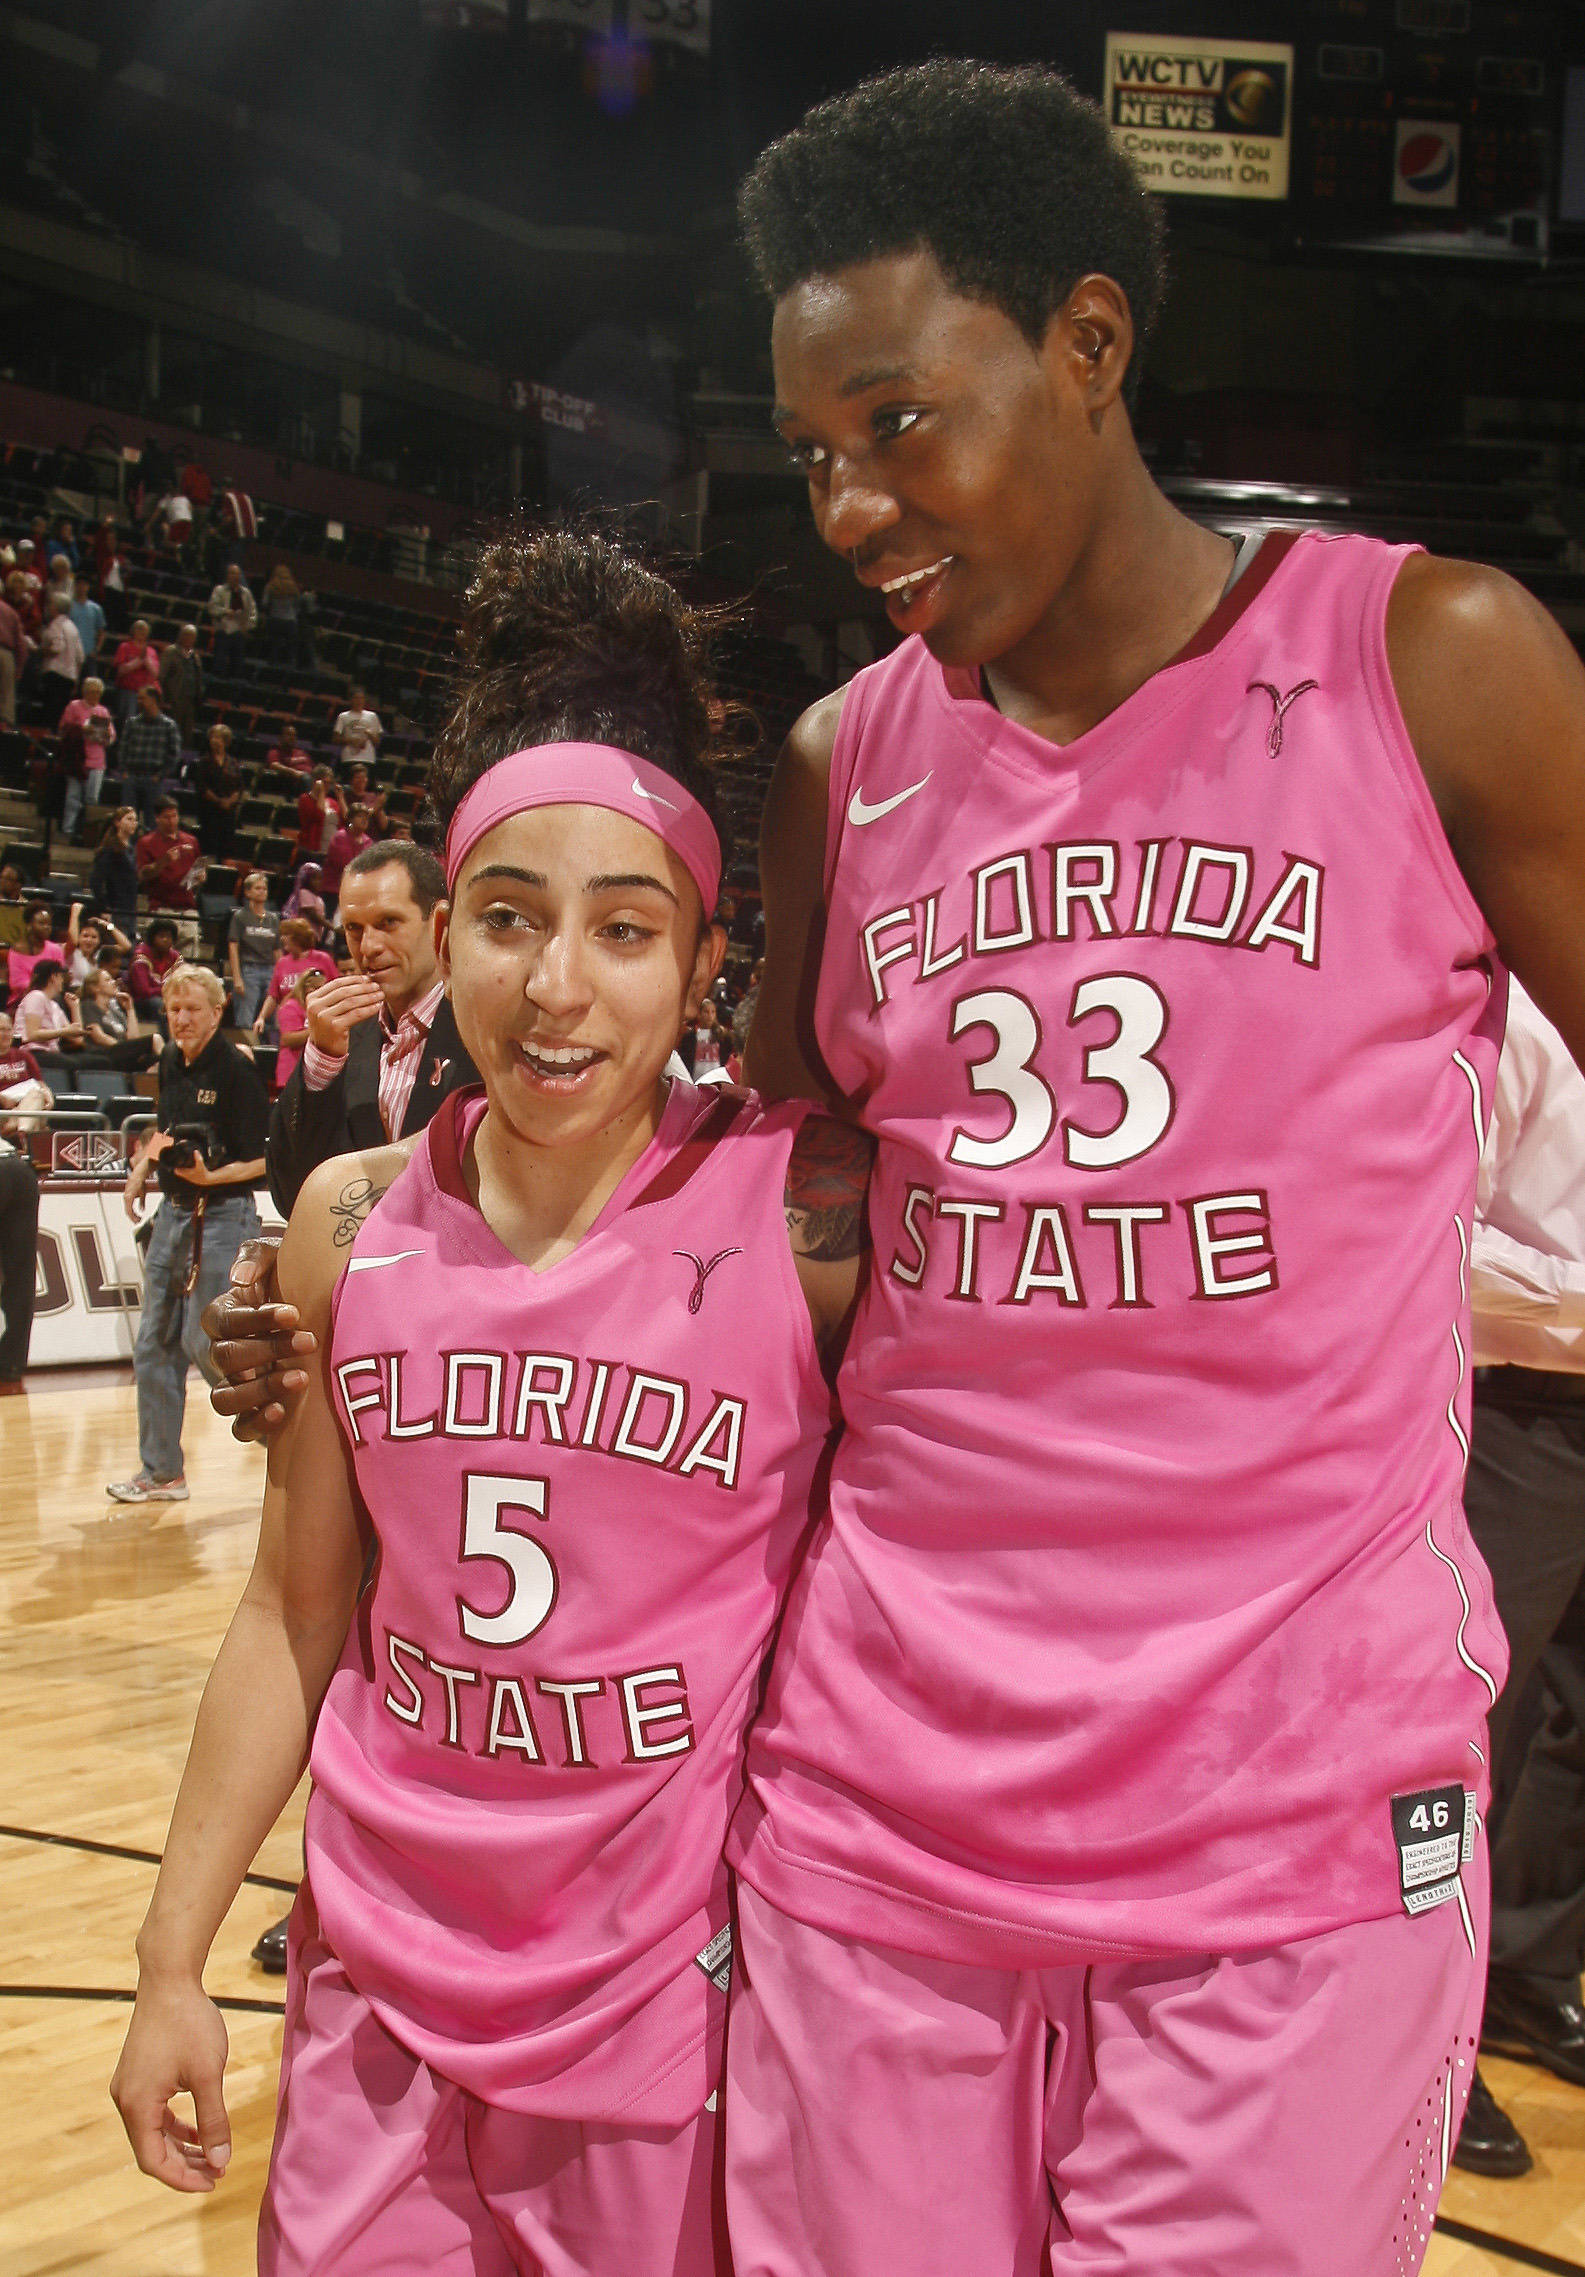 Florida State Seminoles guard Cheetah Delgado (5) celebrates with Natasha Howard (33) after setting a school record of 15 assists after the game against the Boston College Eagles. Mandatory Credit: Phil Sears-USA TODAY Sports